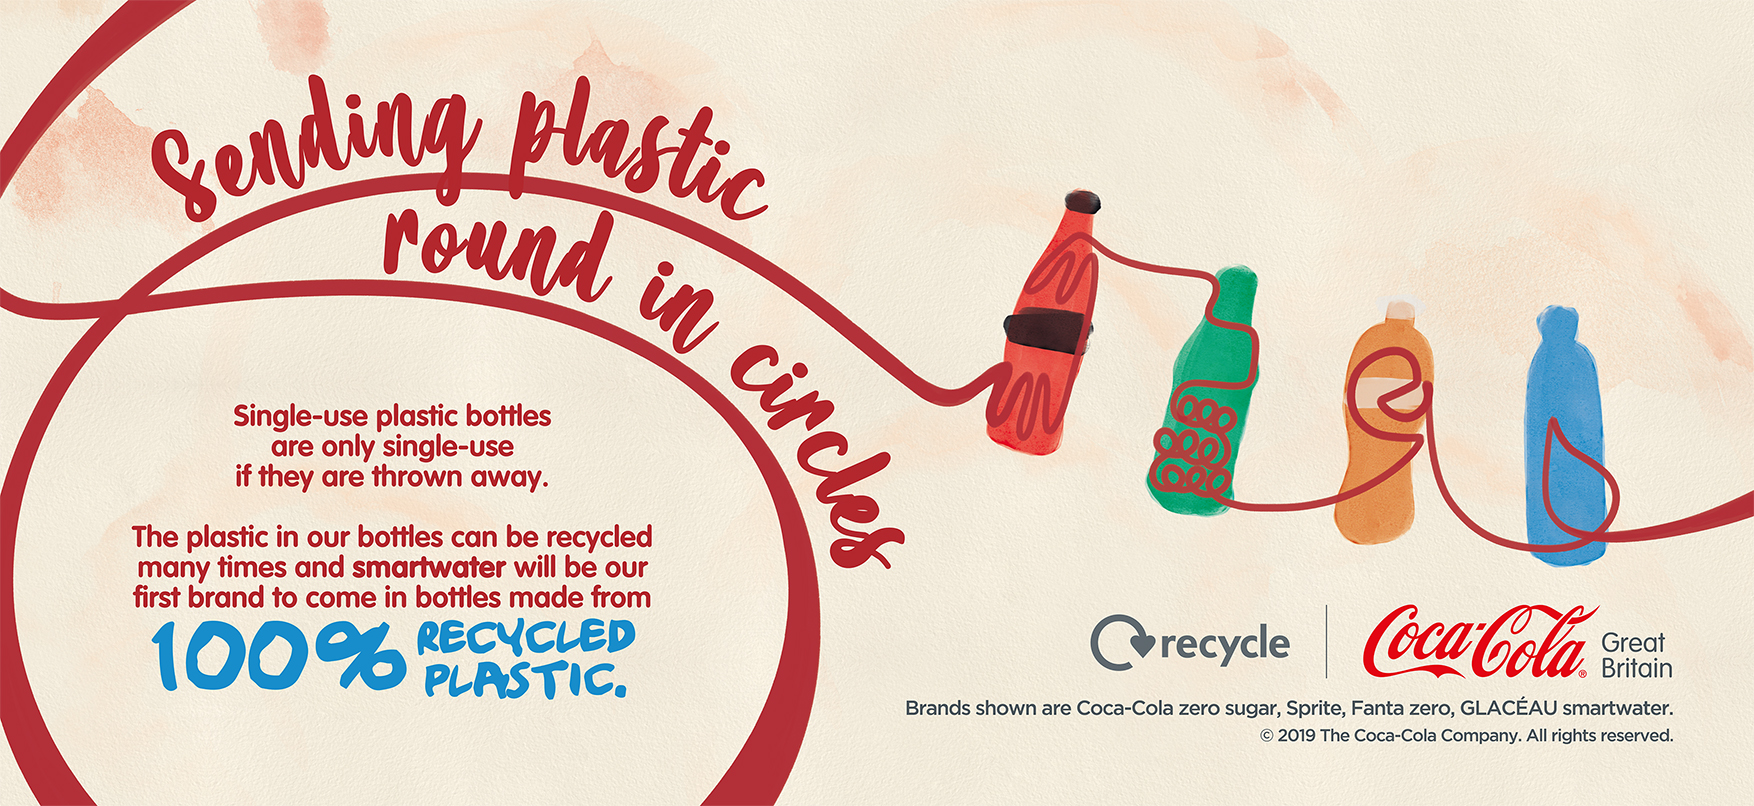 Coca Cola around the world have transitioned to using recycled plastic in their bottle manufacturing